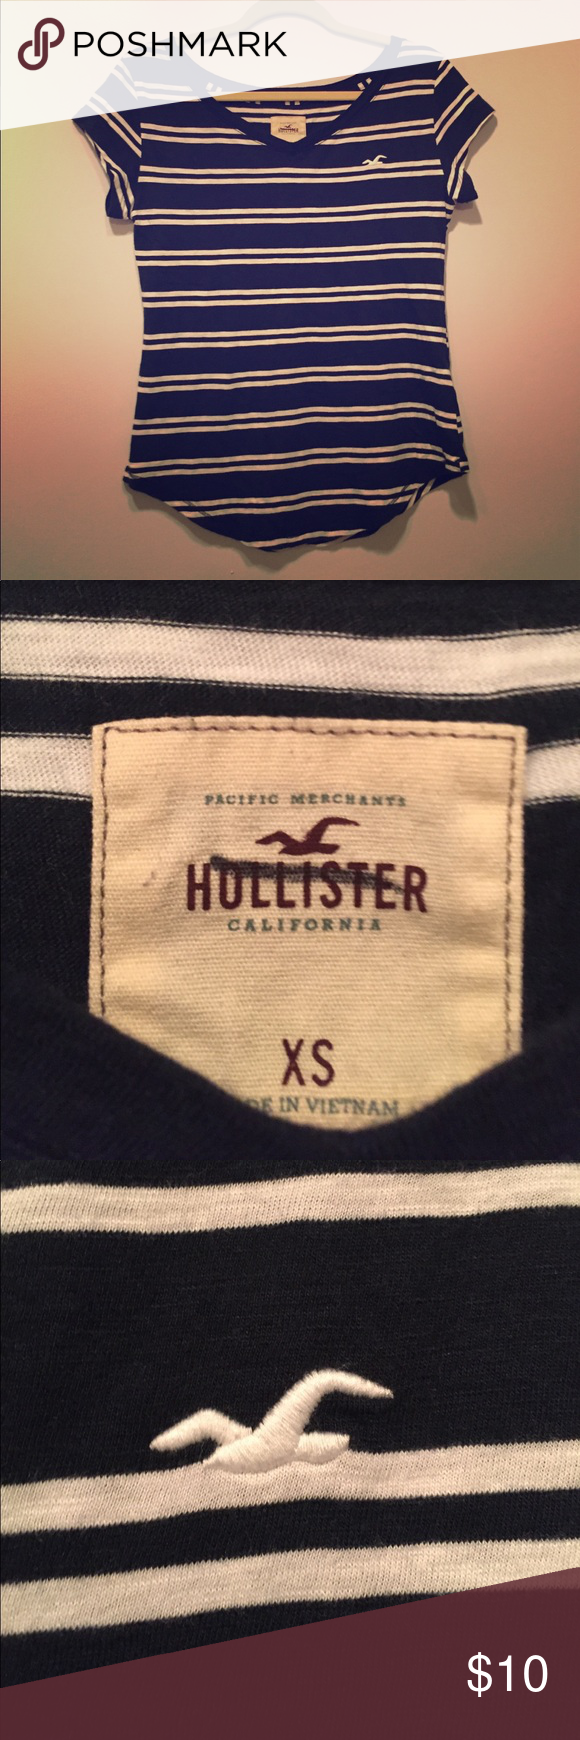 "Hollister Blue and White Striped T-shirt NWOT Hollister blue and white striped t-shirt. The shirt has a wide V-neck and the bottom of the shirt is ""U"" shaped in both the front and back. The material is very soft and if high quality. The shirt has. Ever been worn and is in perfect condition.  NWOT Hollister Tops Tees - Short Sleeve"